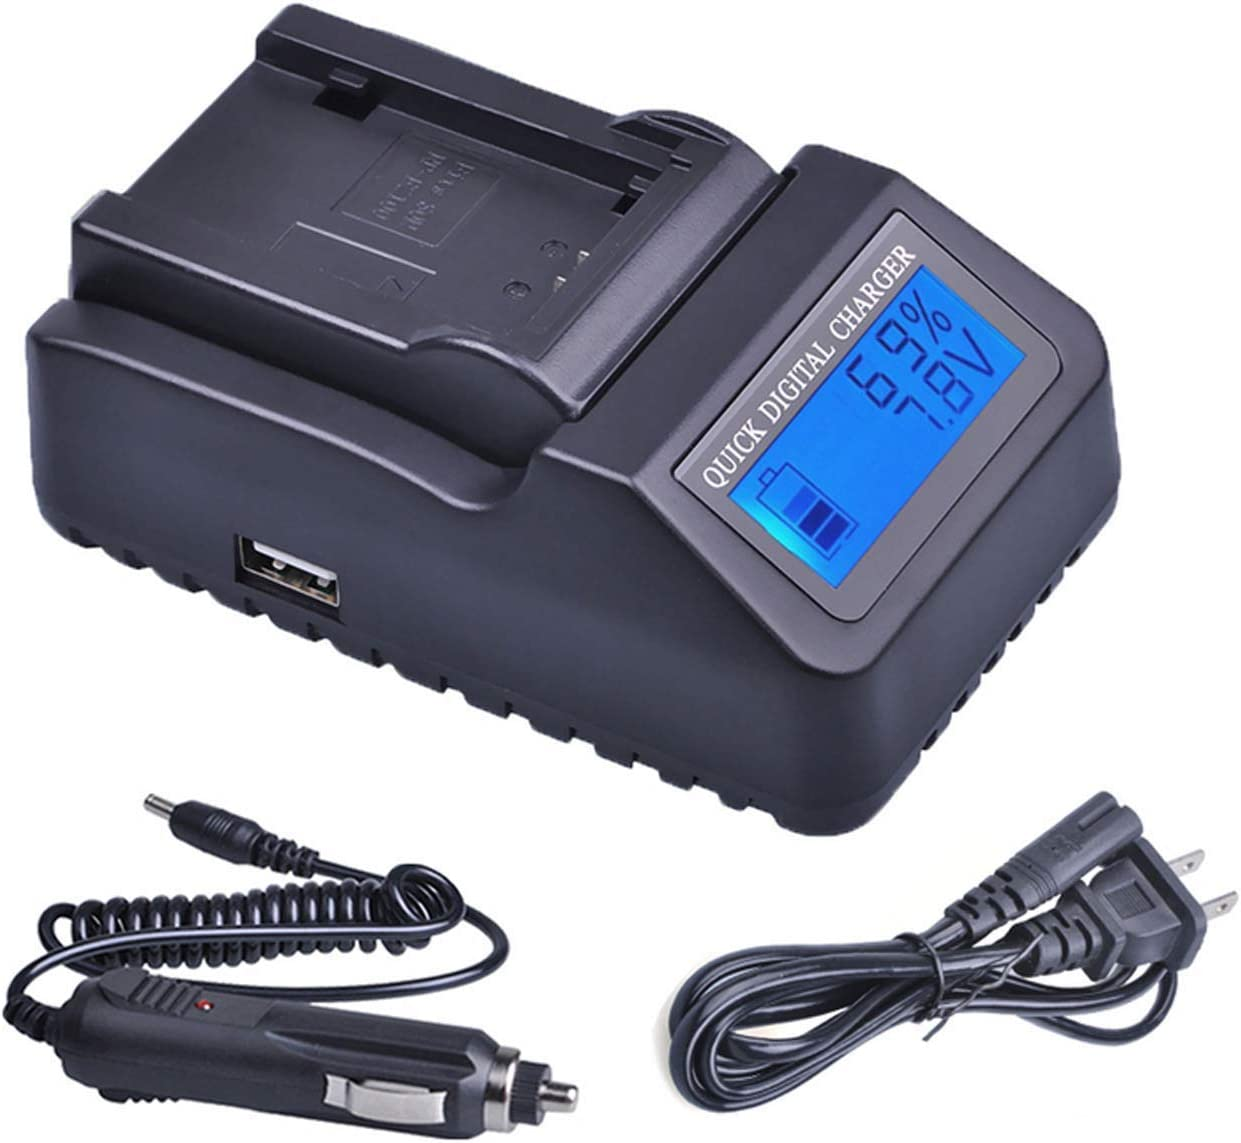 LCD Quick Battery Charger for Sony HDR-HC5E HDR-HC9E MiniDV Handycam Camcorder HDR-HC7E